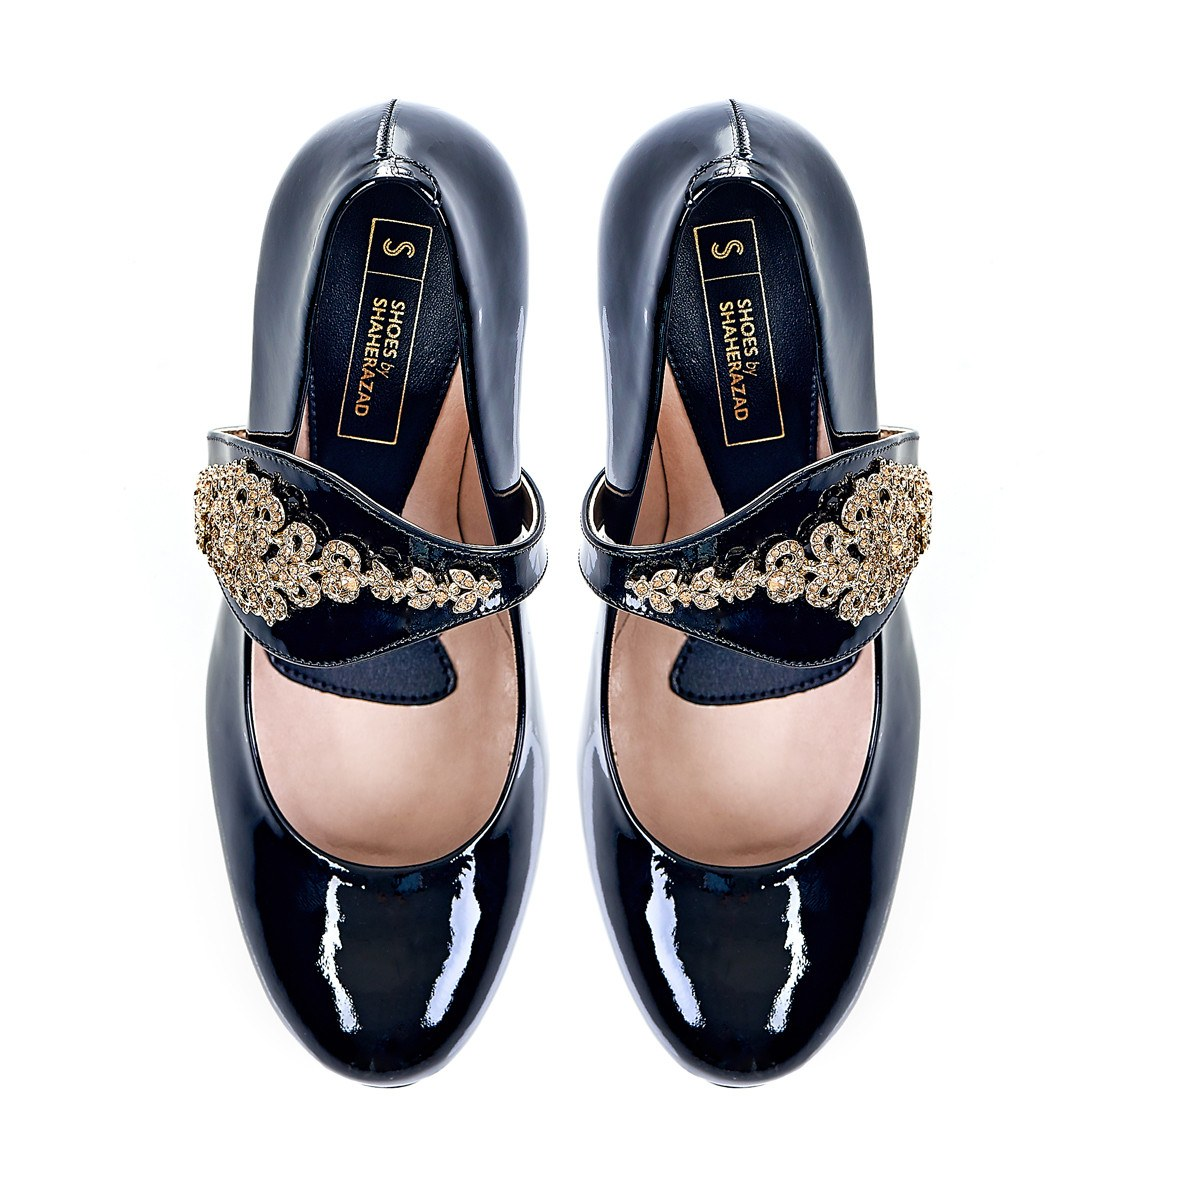 Dream Then Do in Gold Gems - 18 Hour Heels - Black Leather - Shoes by Shaherazad